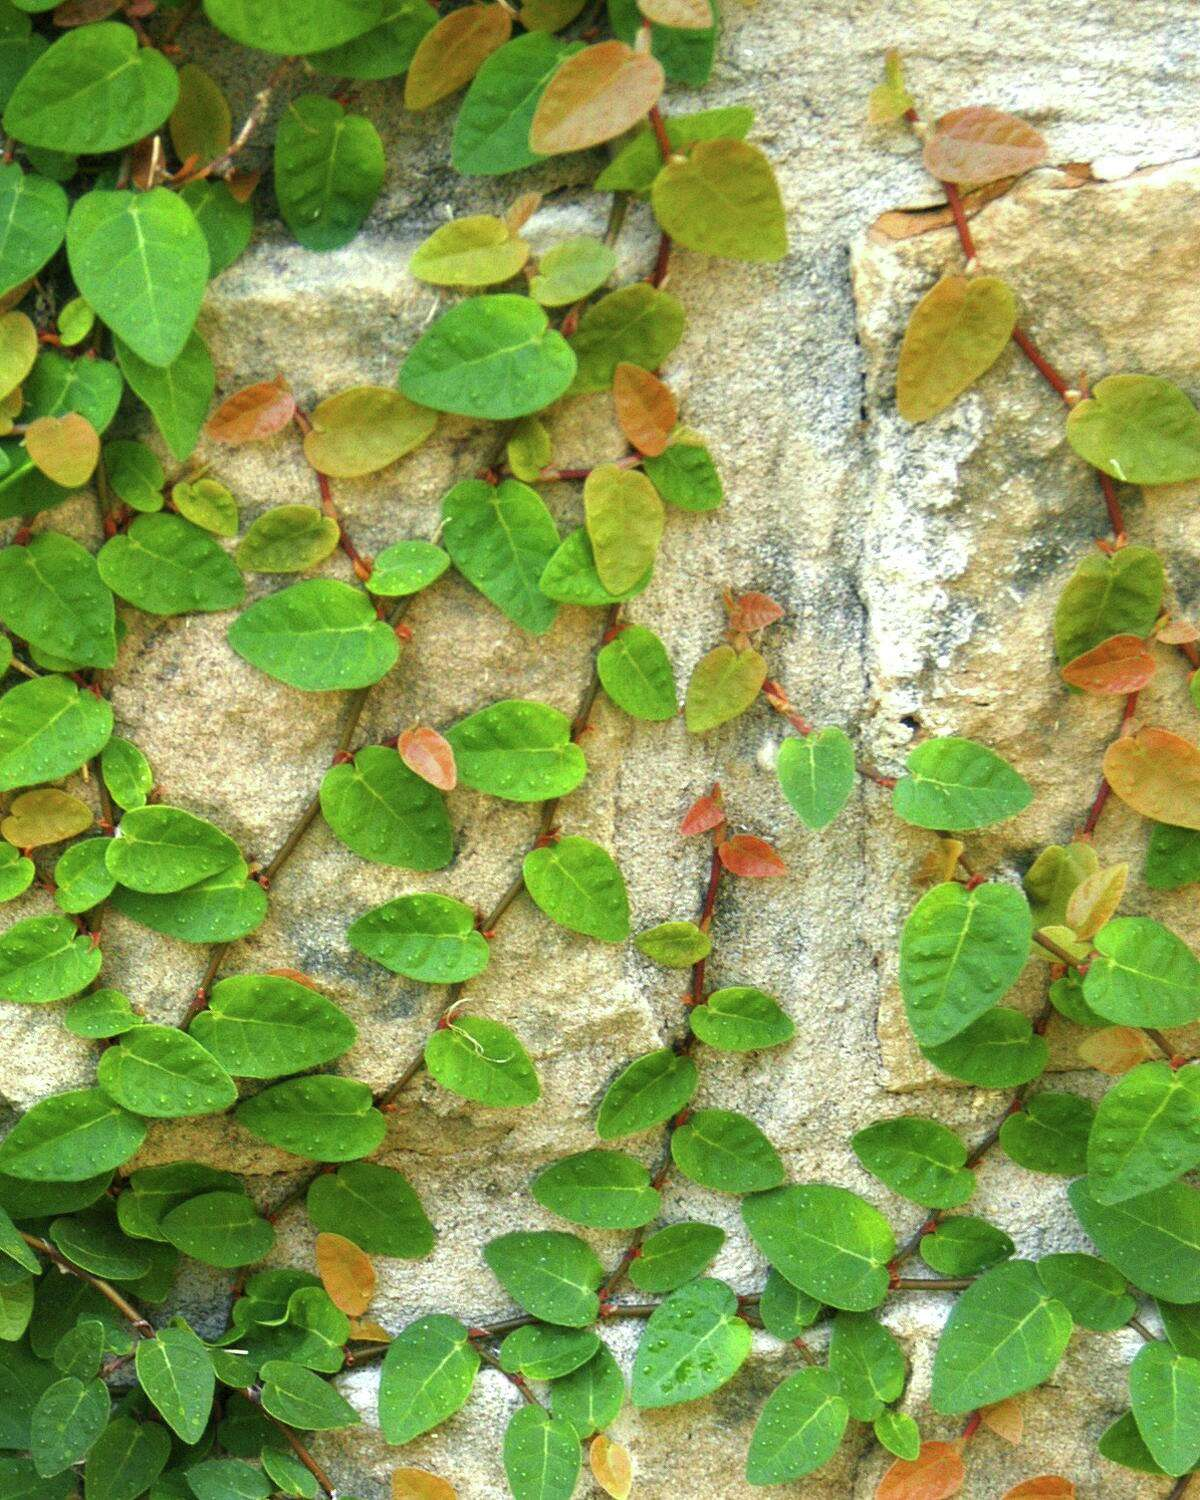 The hugging vines like fig ivy, English ivy and Boston ivy (curiously, all unrelated) do nothing to pull brick, stone or mortar apart.